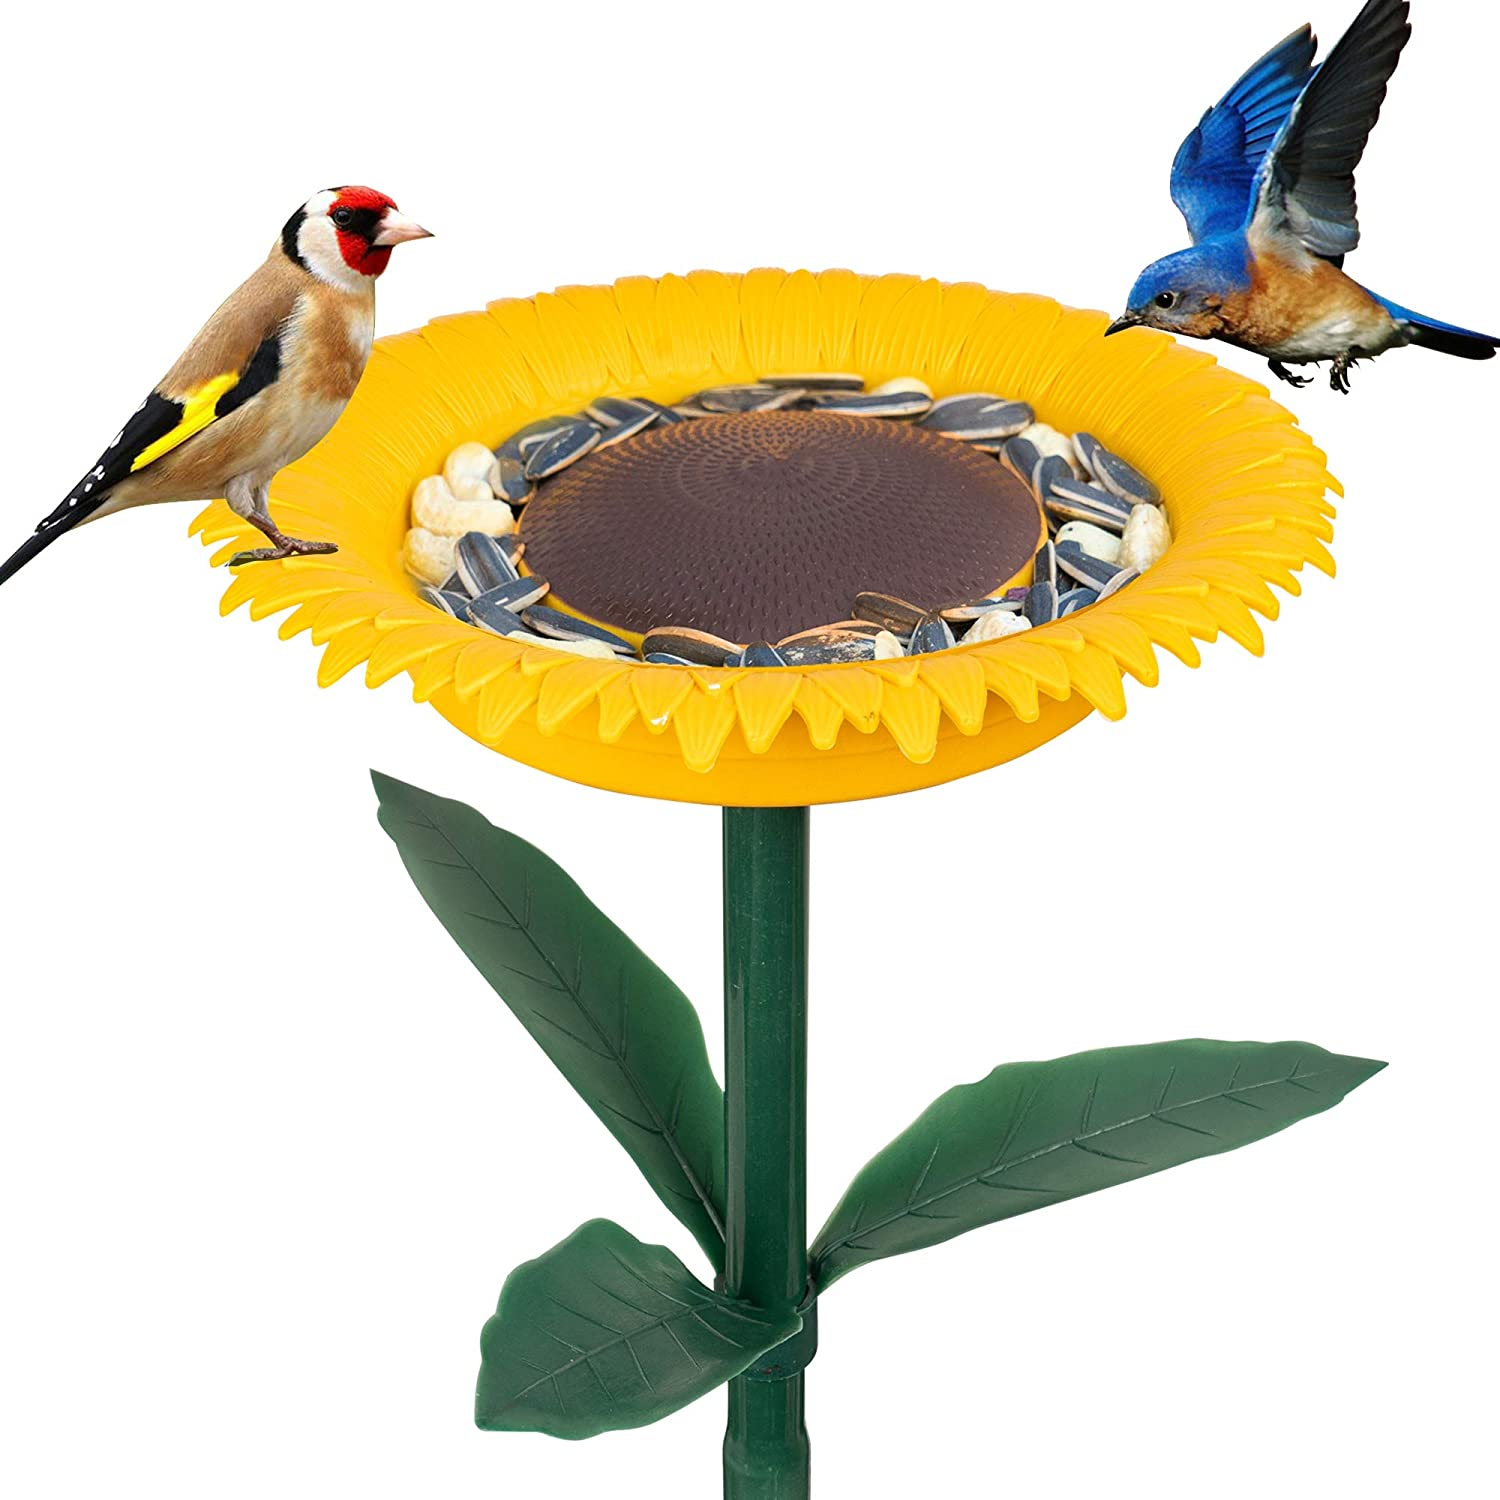 Free shipping anywhere in the nation FUNPENY Bird Bath Feeders Bowl Challenge the lowest price Coneflower Outside for Outdoors